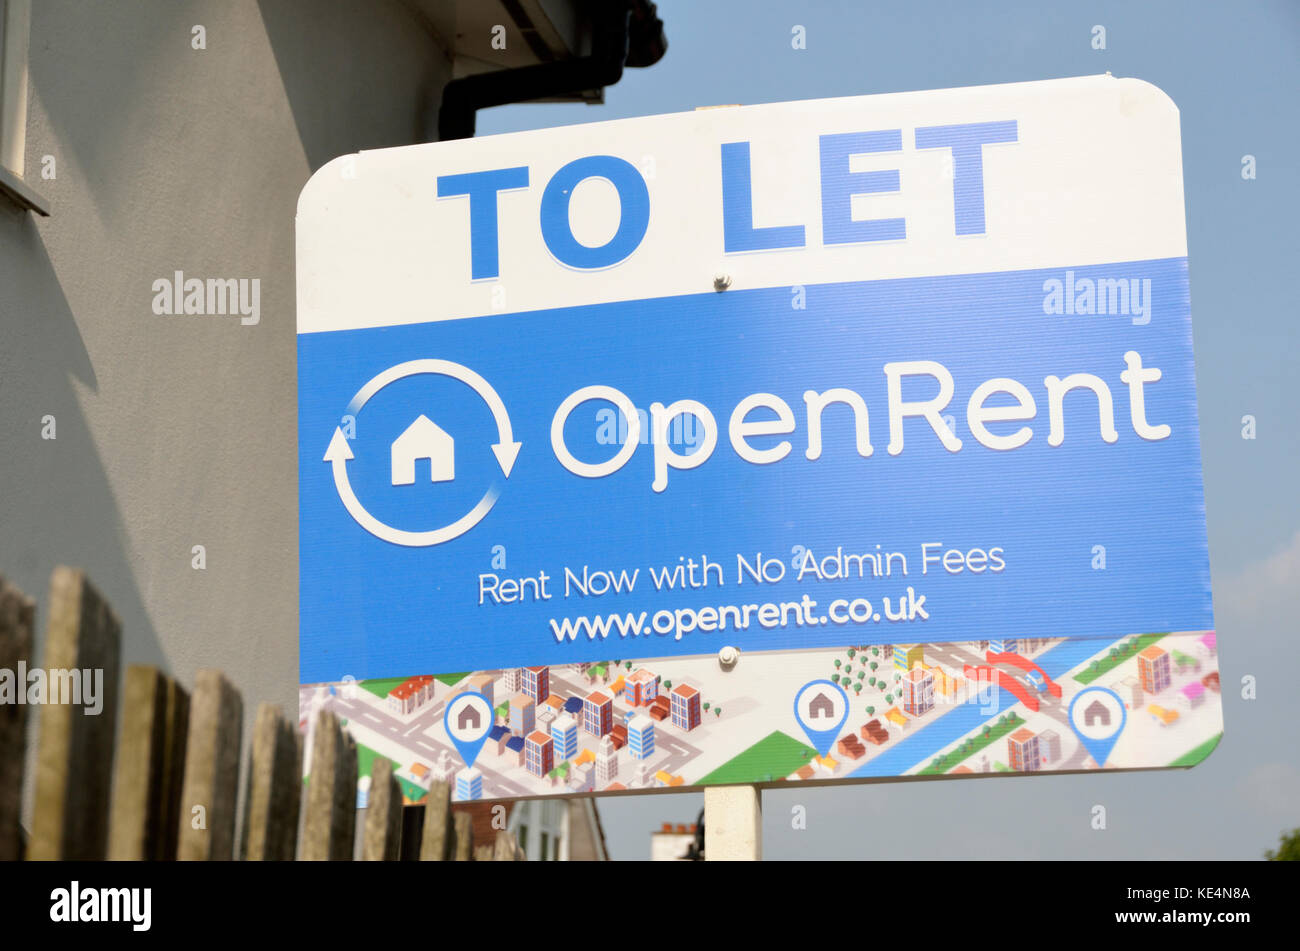 OpenRent To Let online letting estate agent board outside a house, London, UK.. - Stock Image